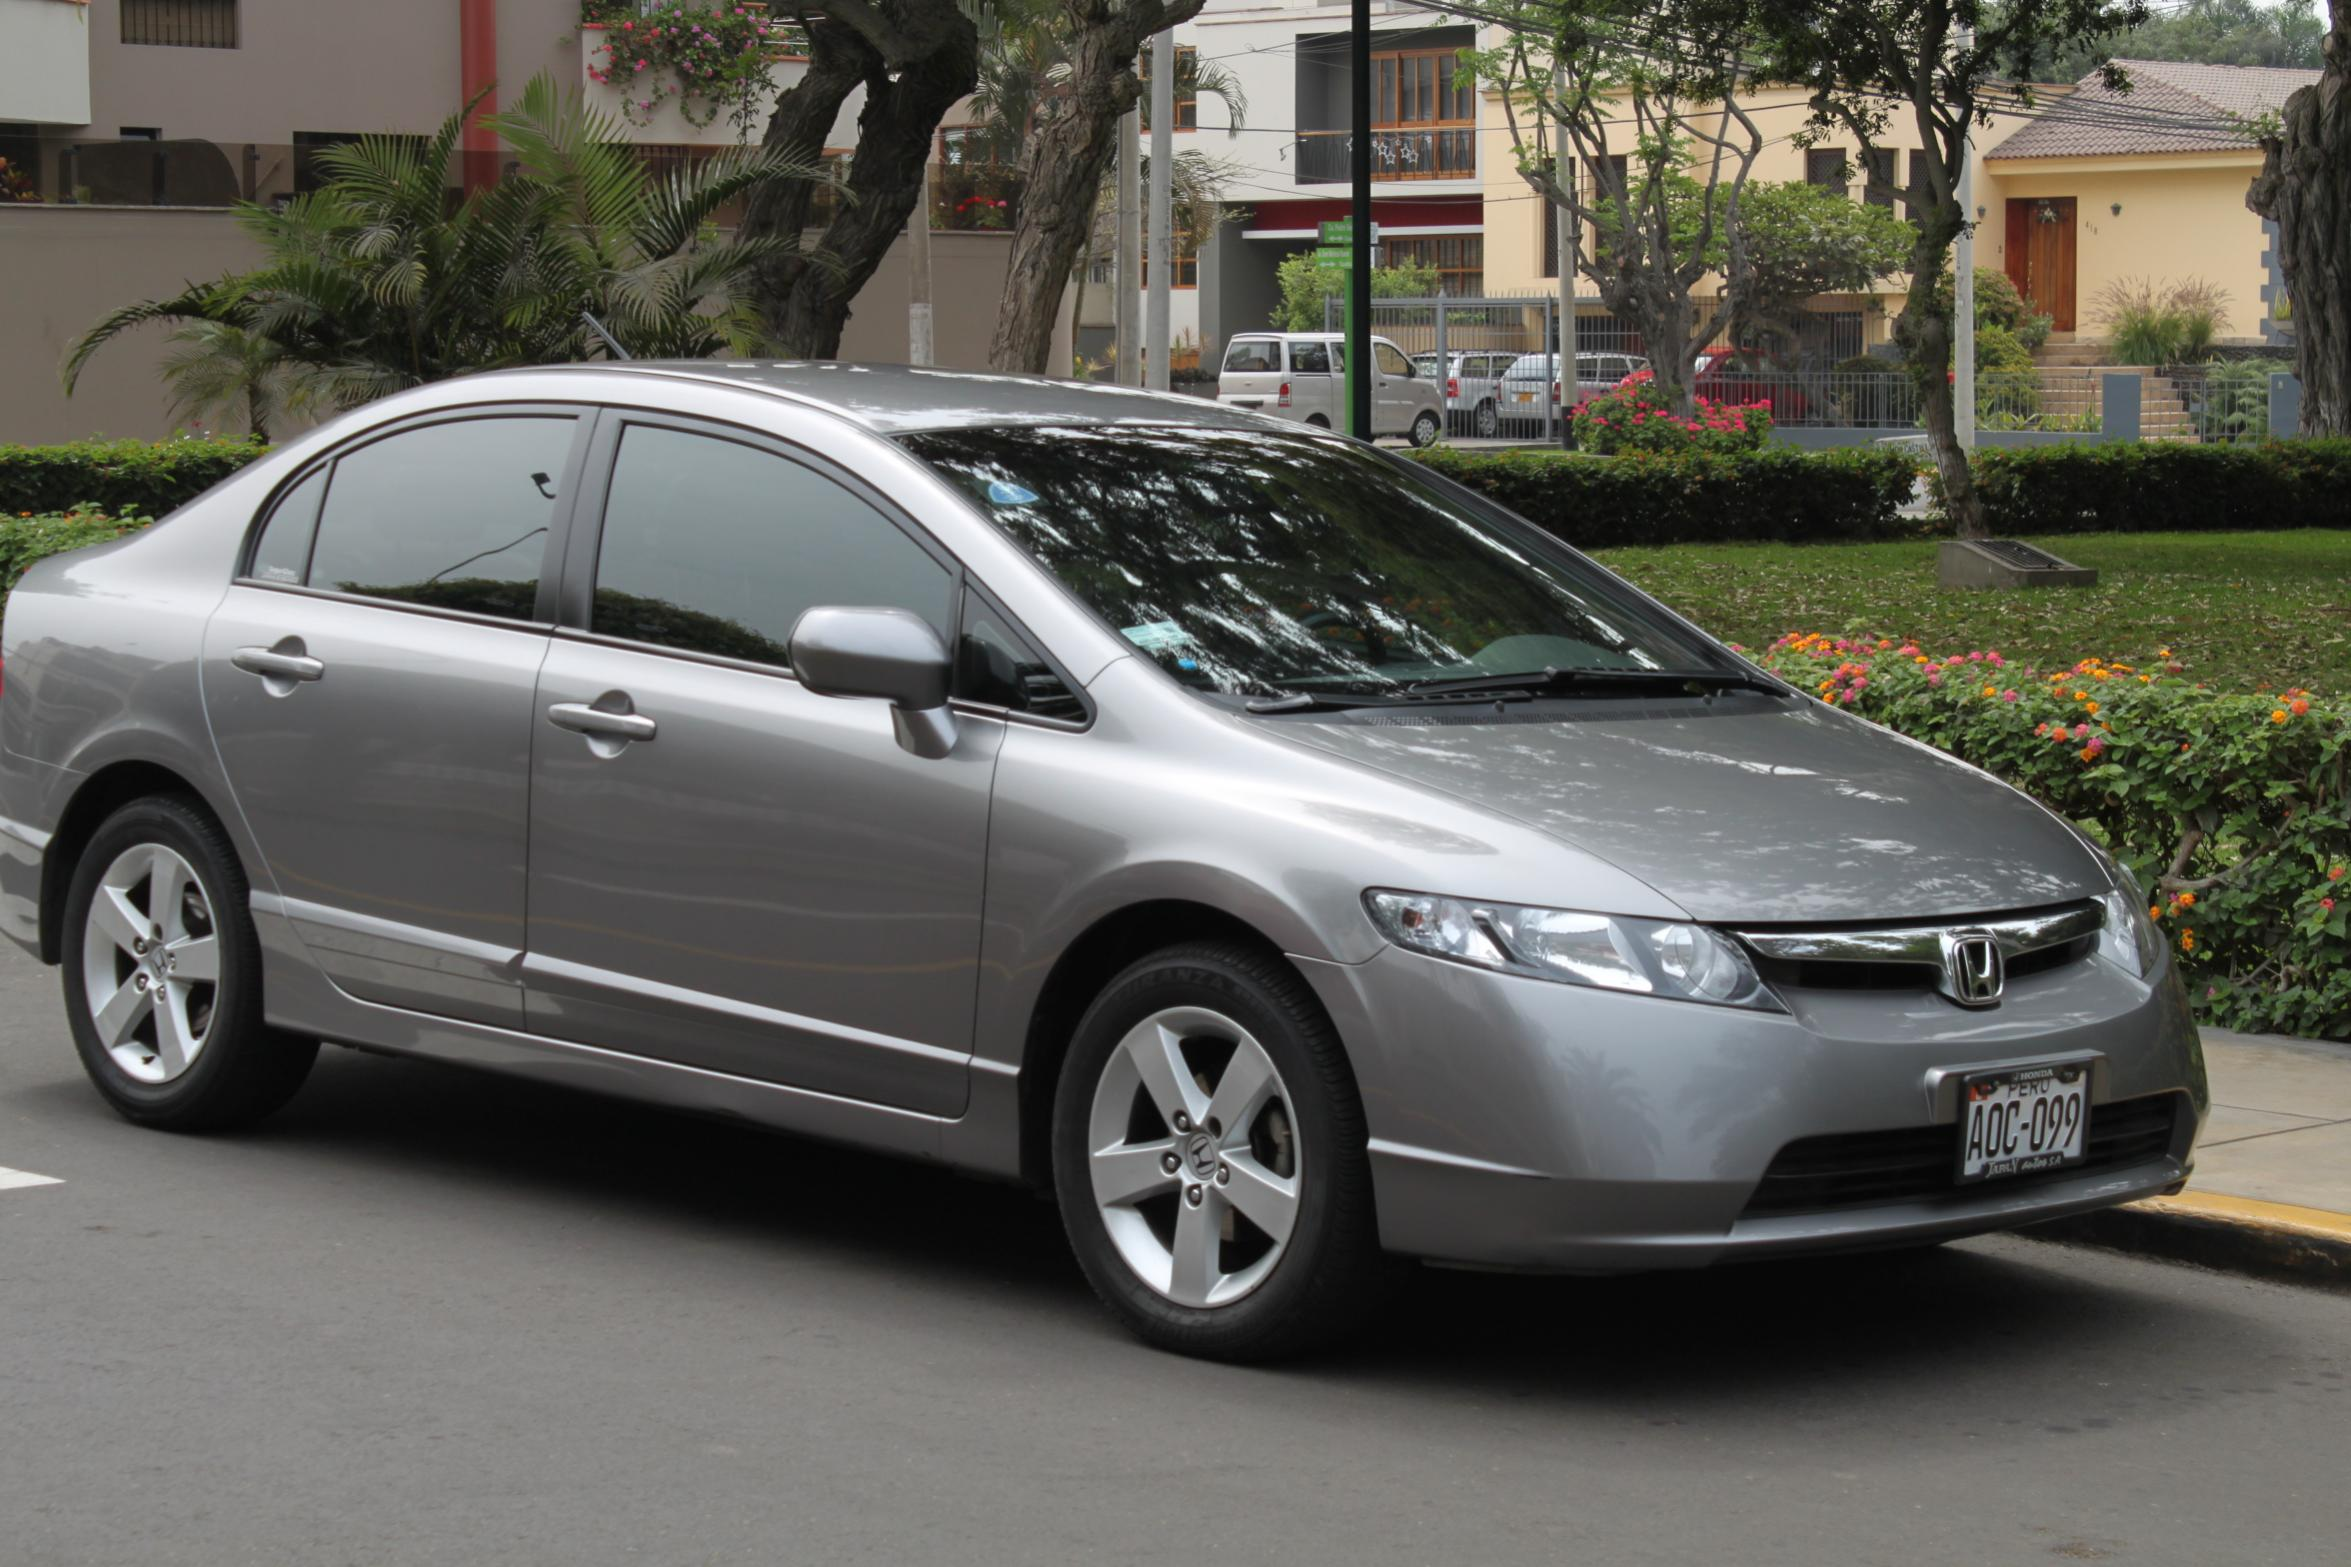 2008 Honda Civic #3